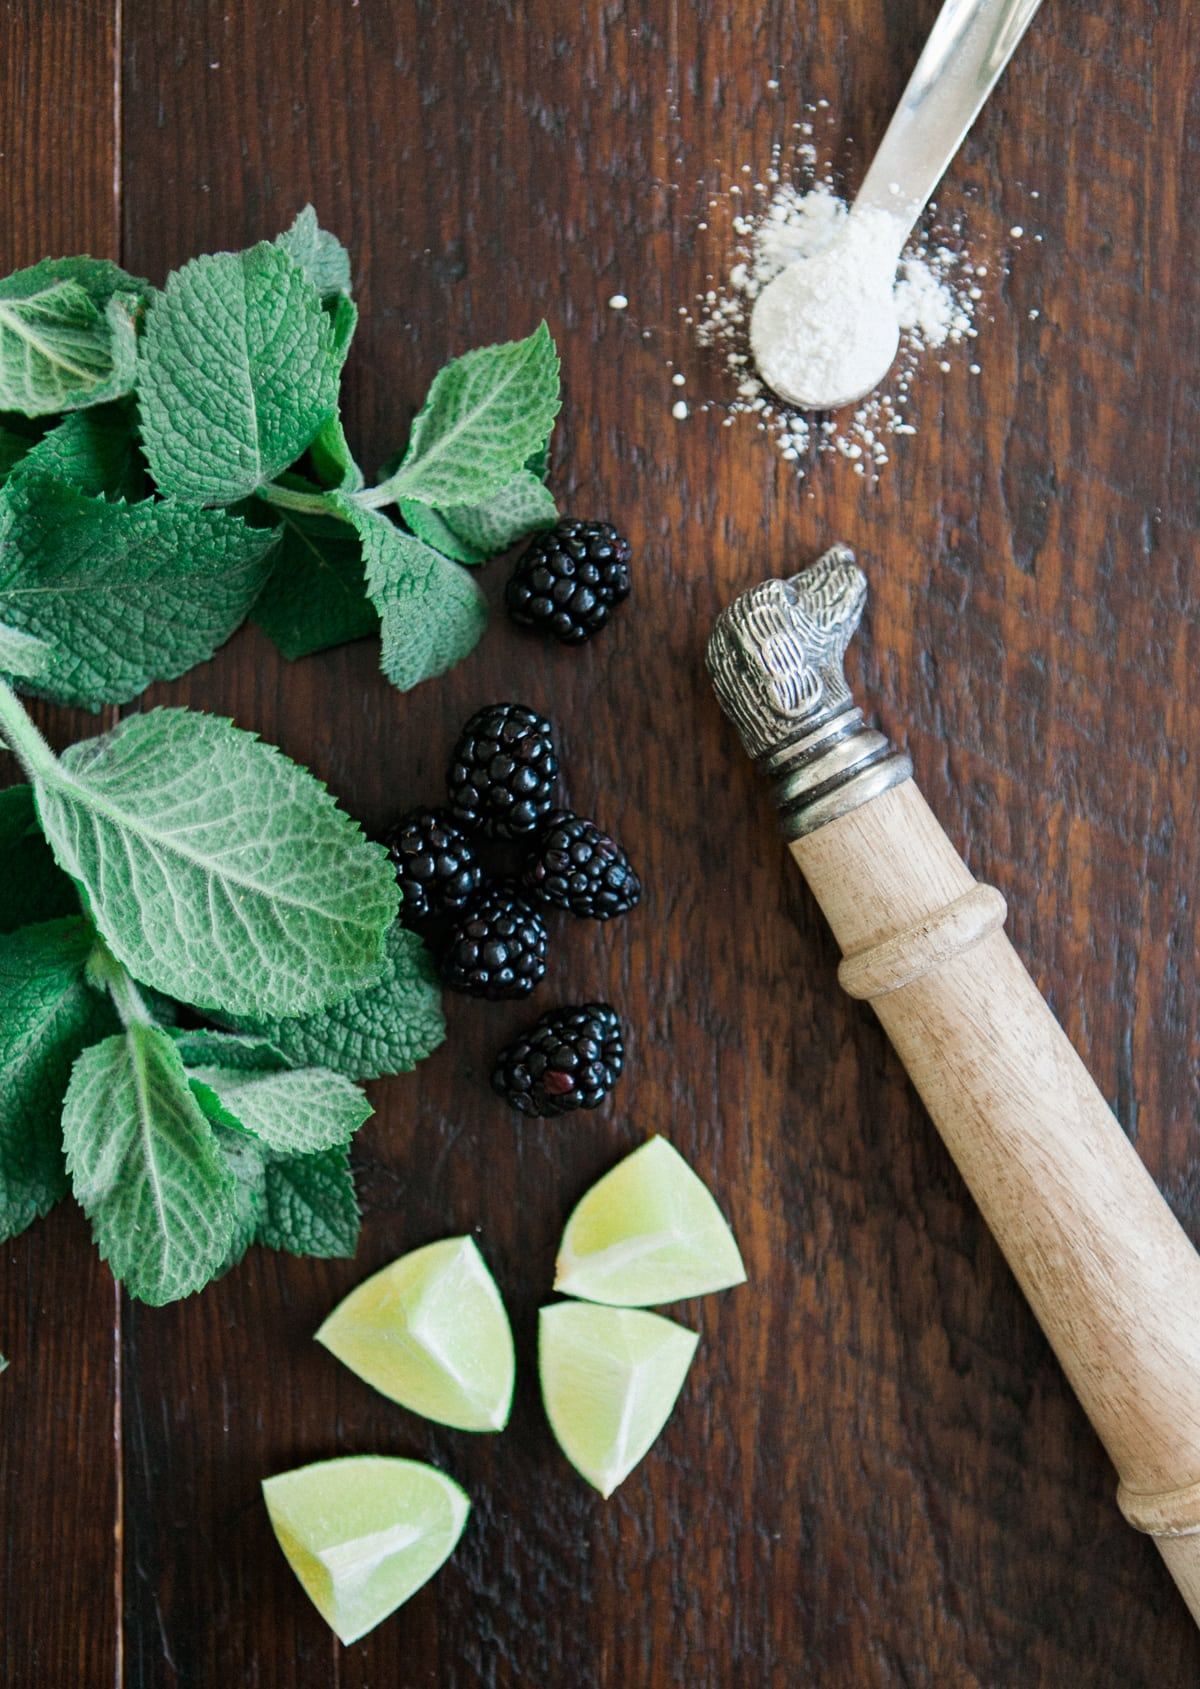 blackberry infused mojito - jessica brigham blog - magazine ready for life - tradtional mojito with a twist